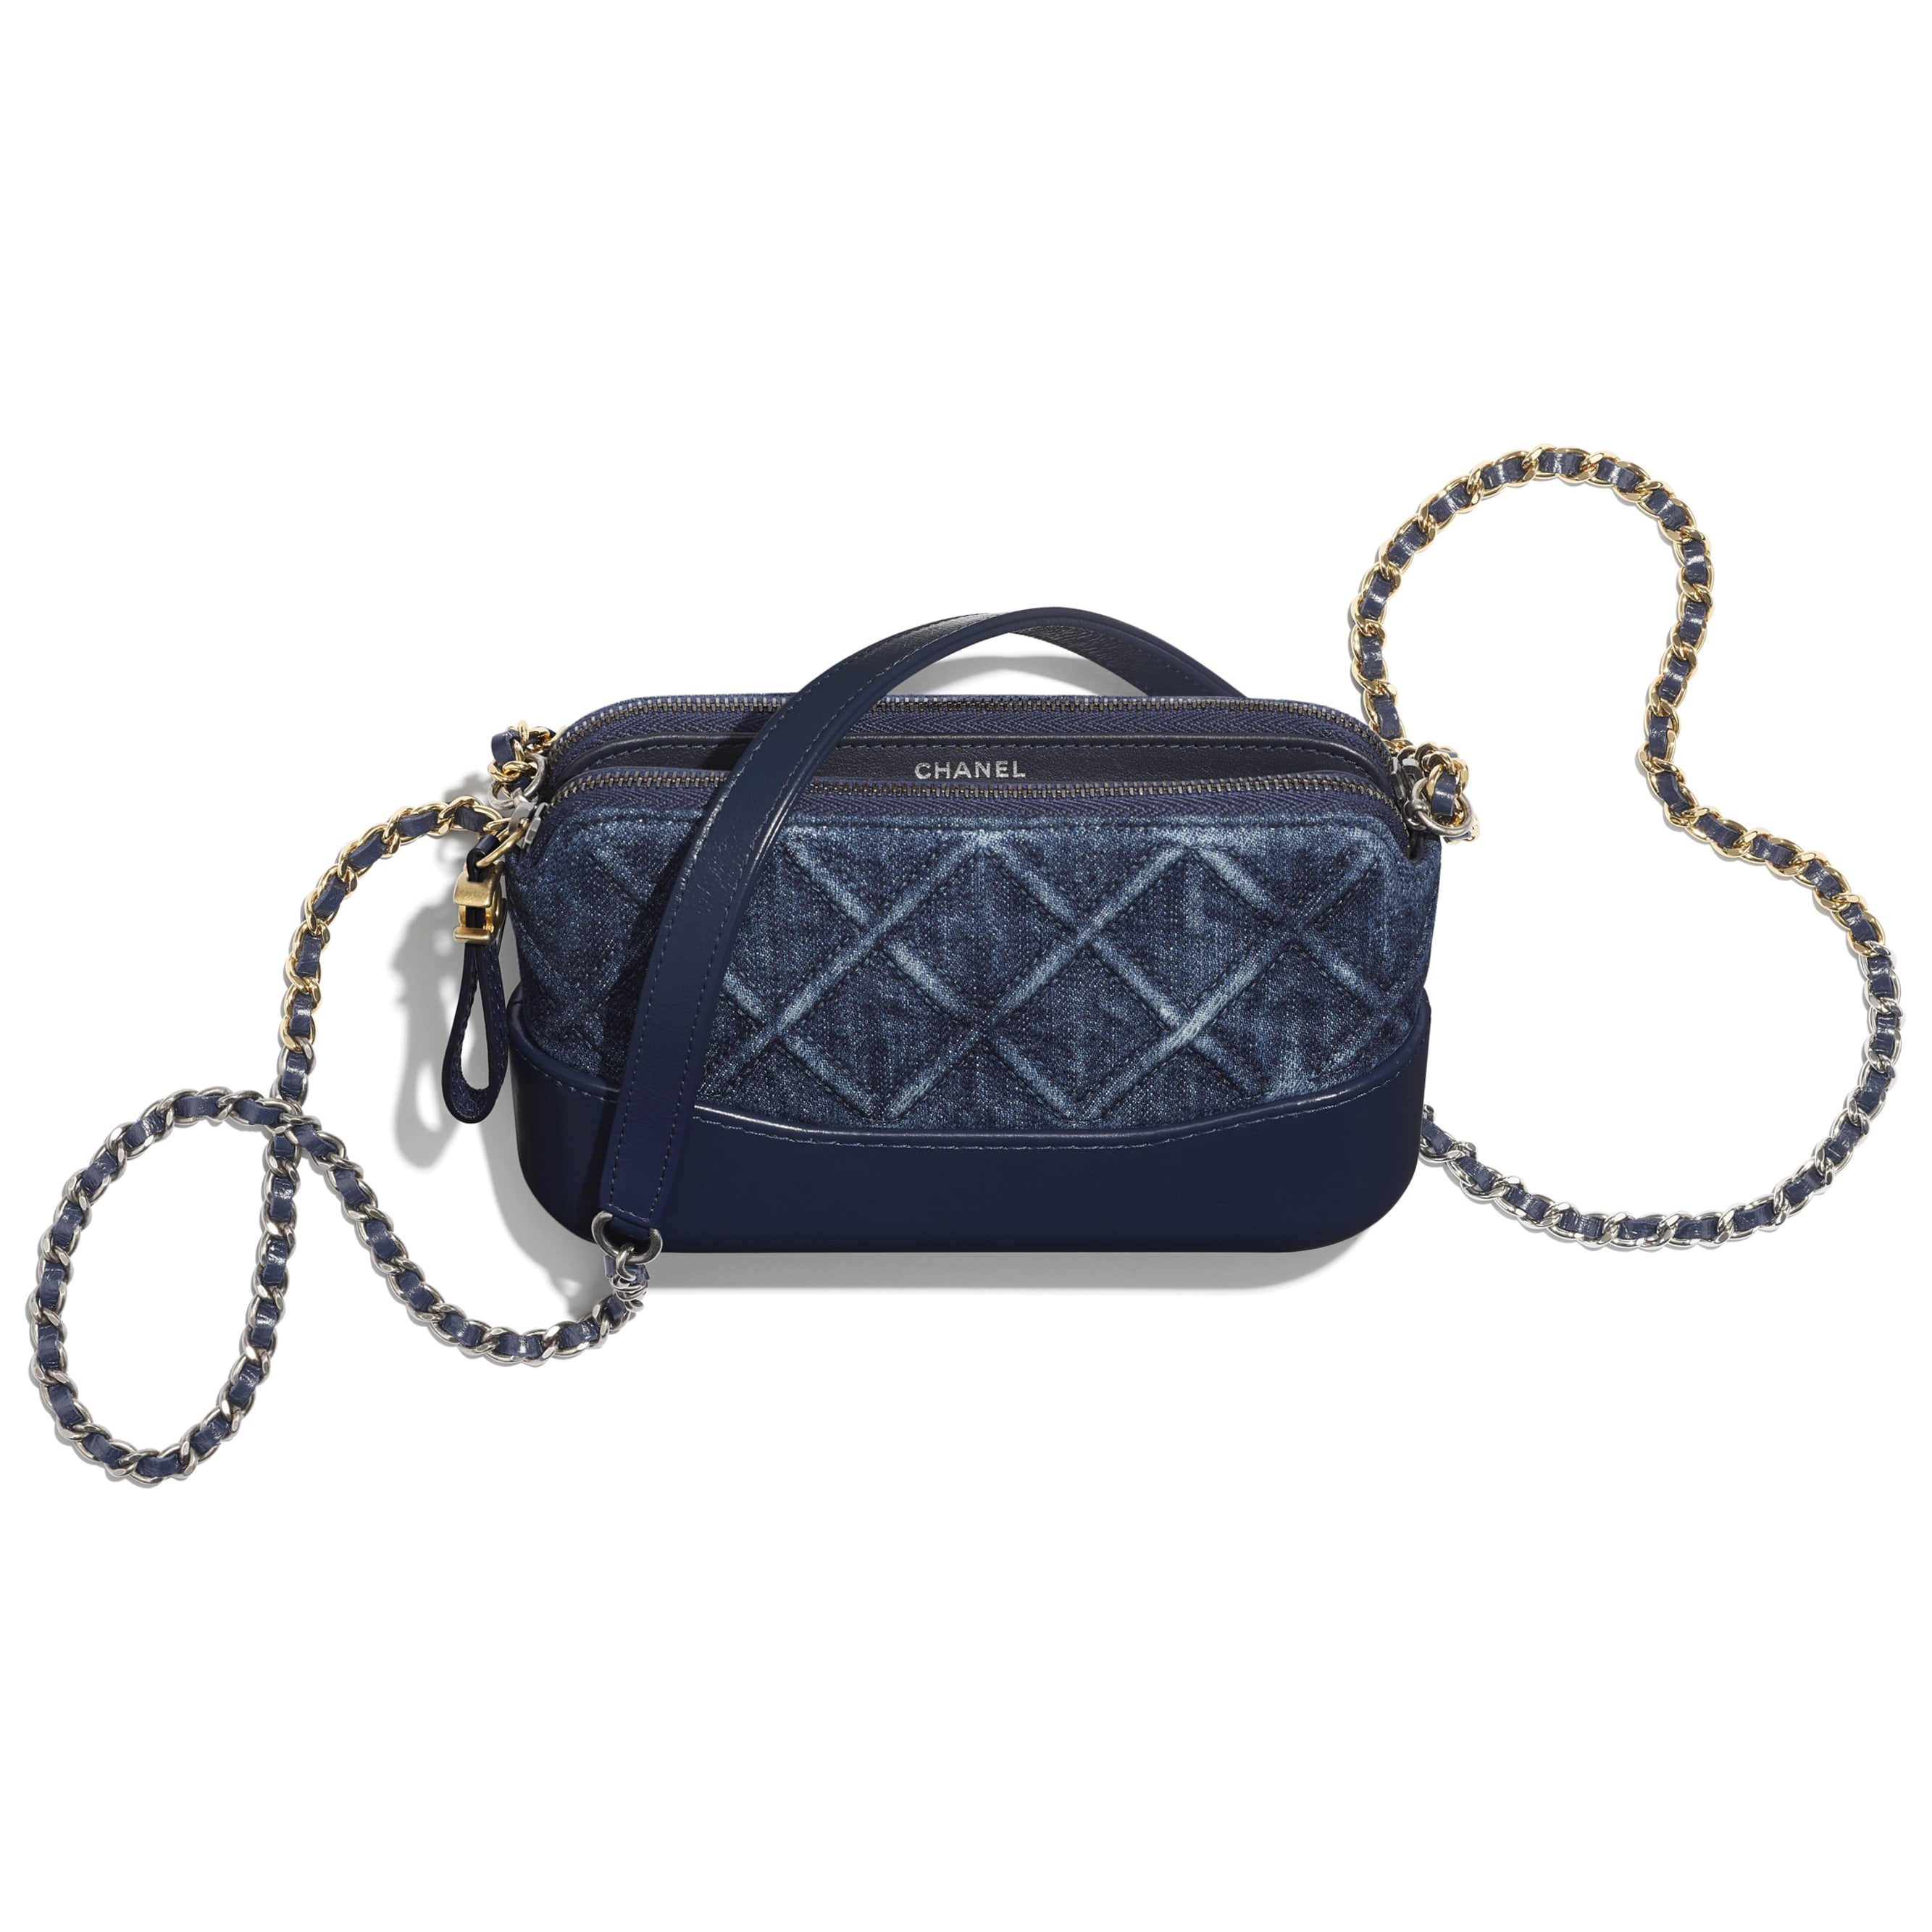 Clutch With Chain - Blue - Denim, Calfskin, Gold-Tone, Silver-Tone & Ruthenium-Finish Metal - CHANEL - Other view - see standard sized version